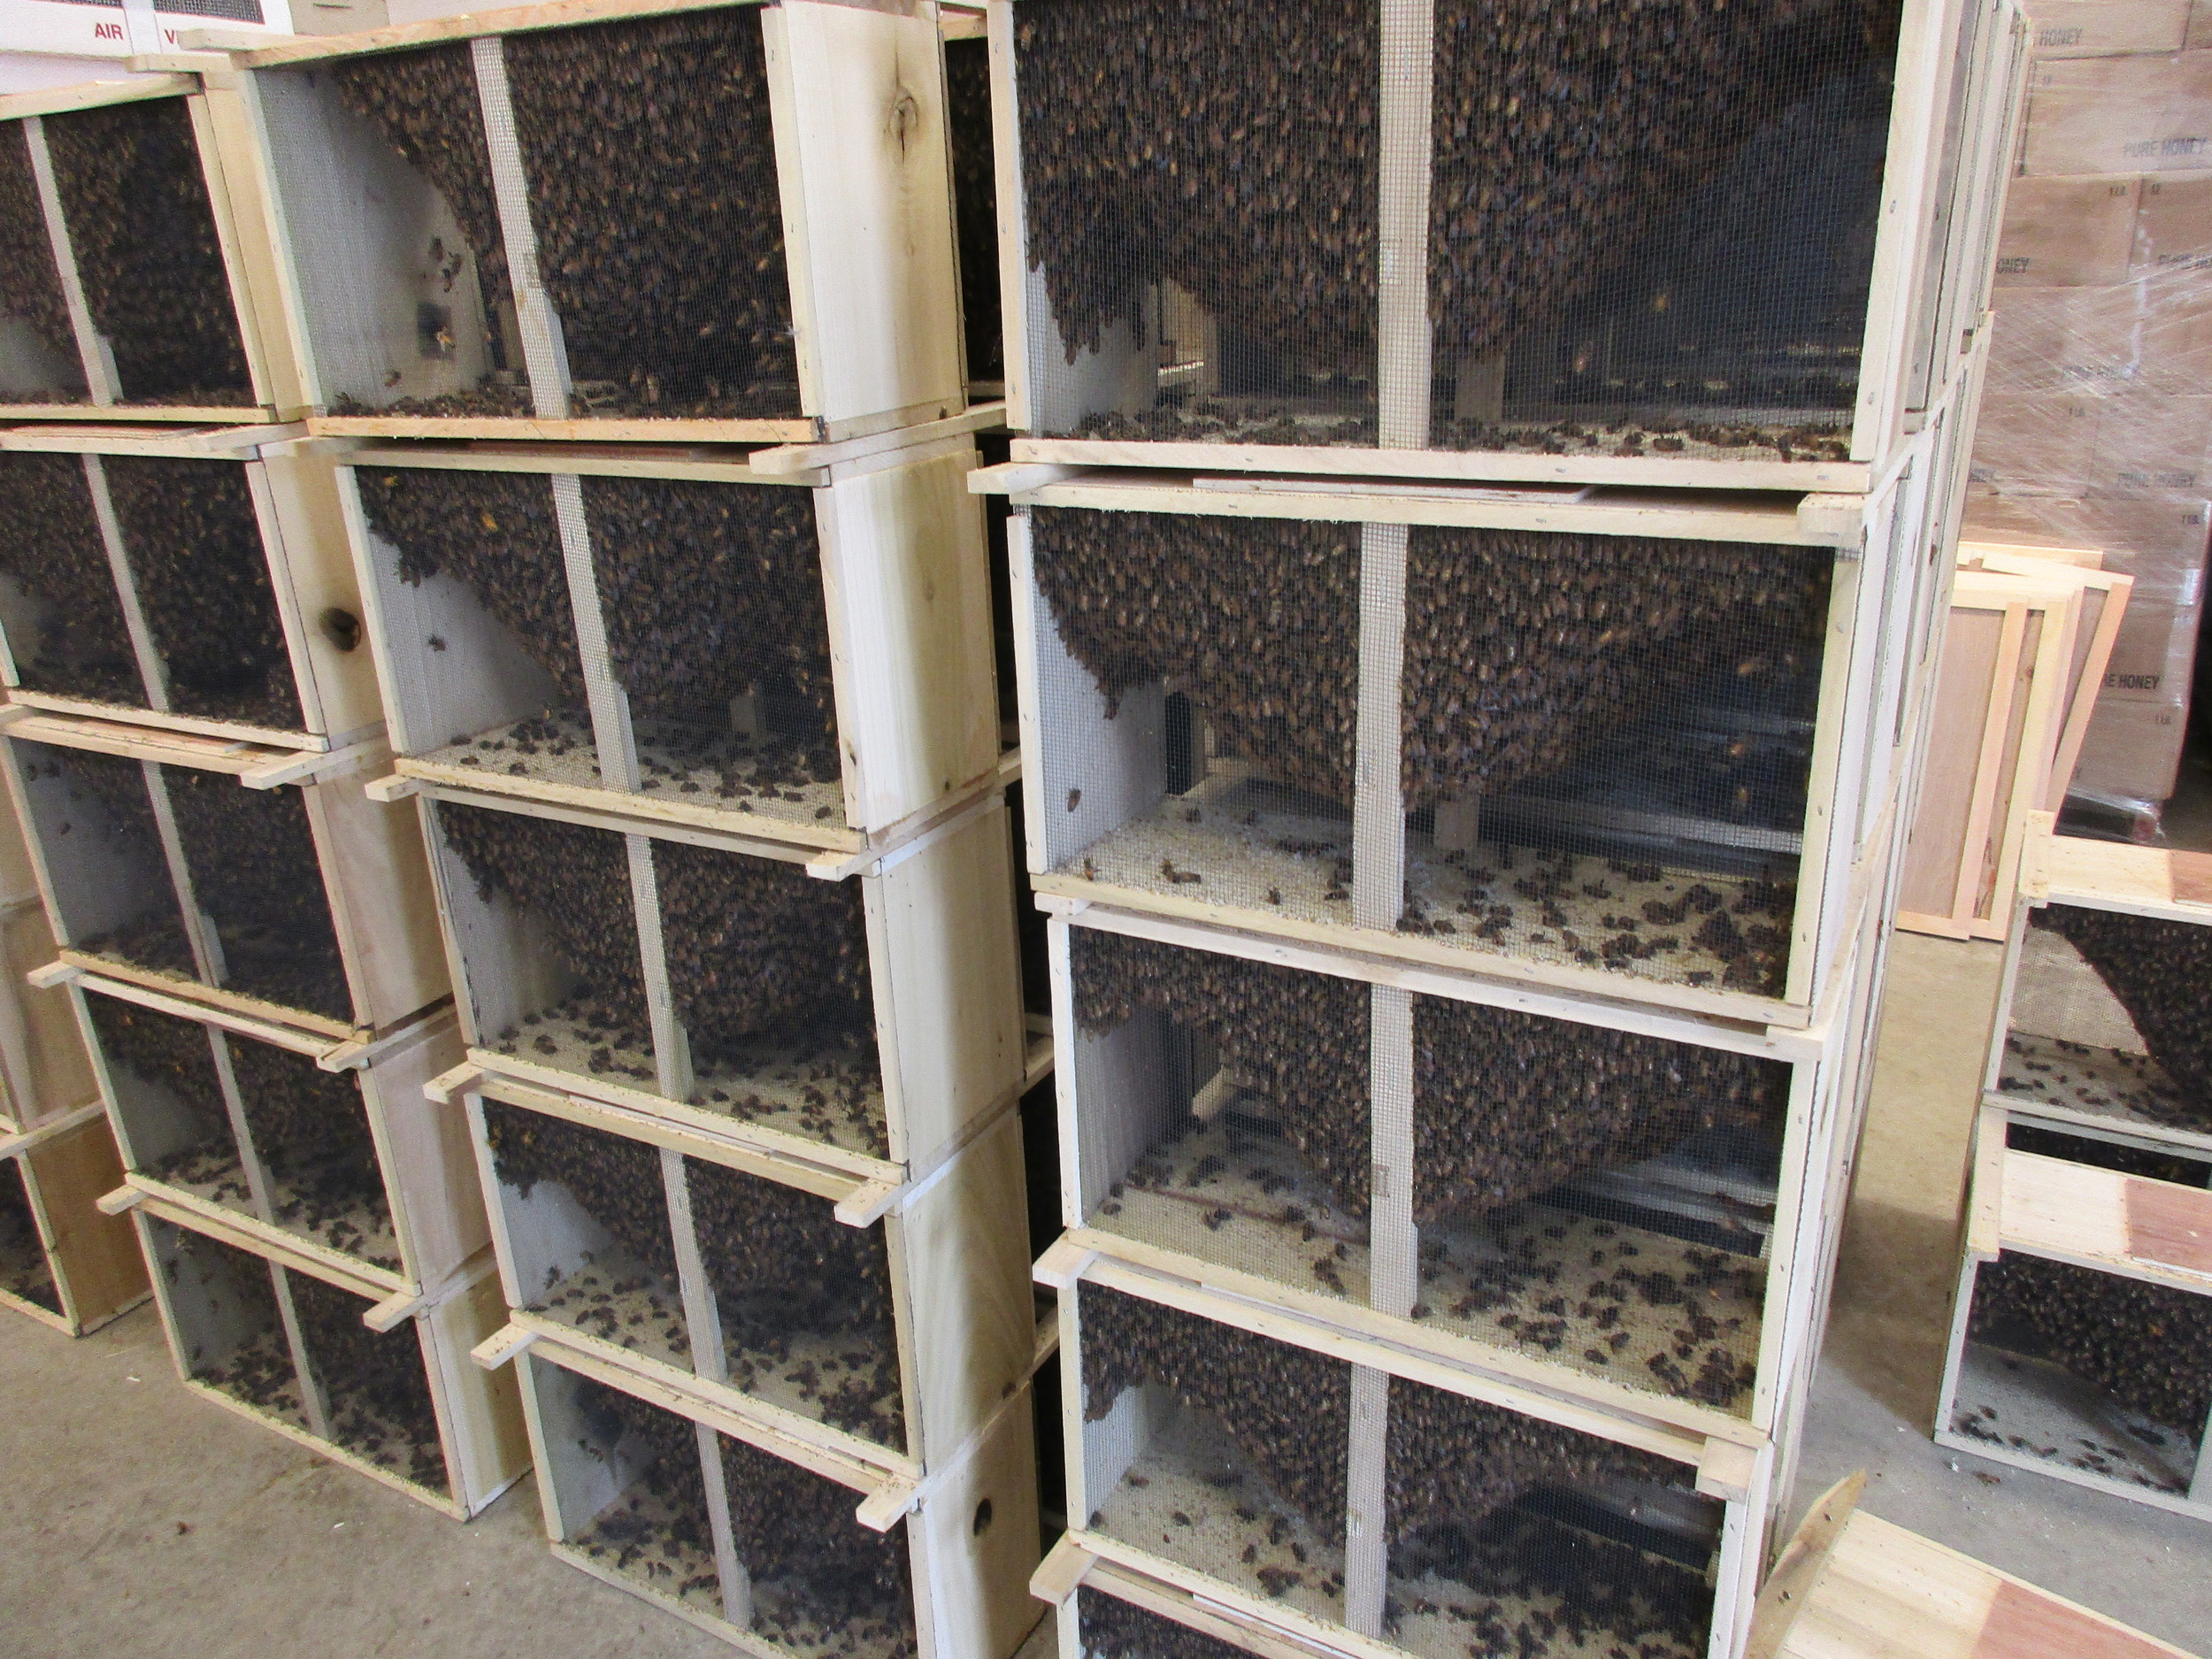 Stacks and stacks of bee packages....